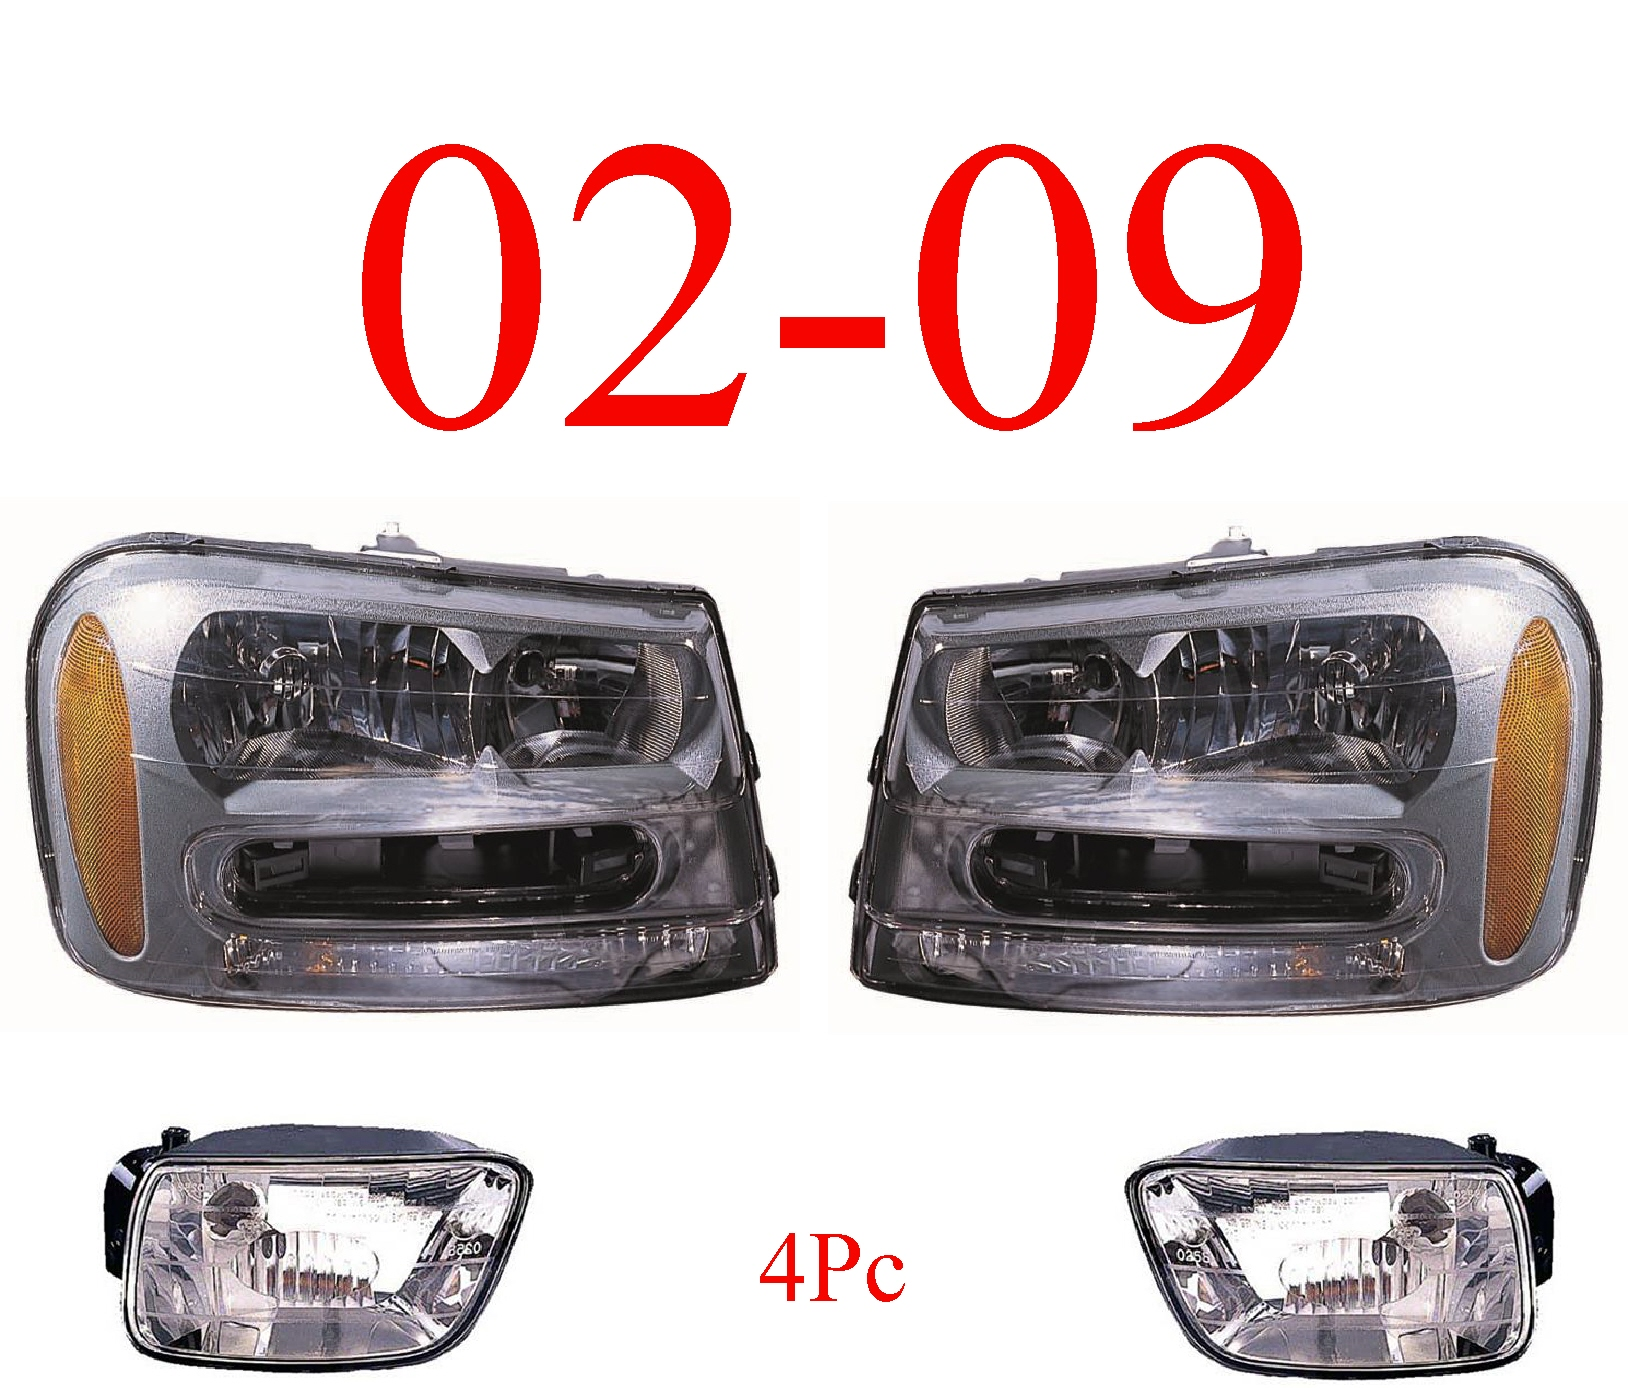 02-09 Trailblazer 4Pc Head & Fog Light Assembly